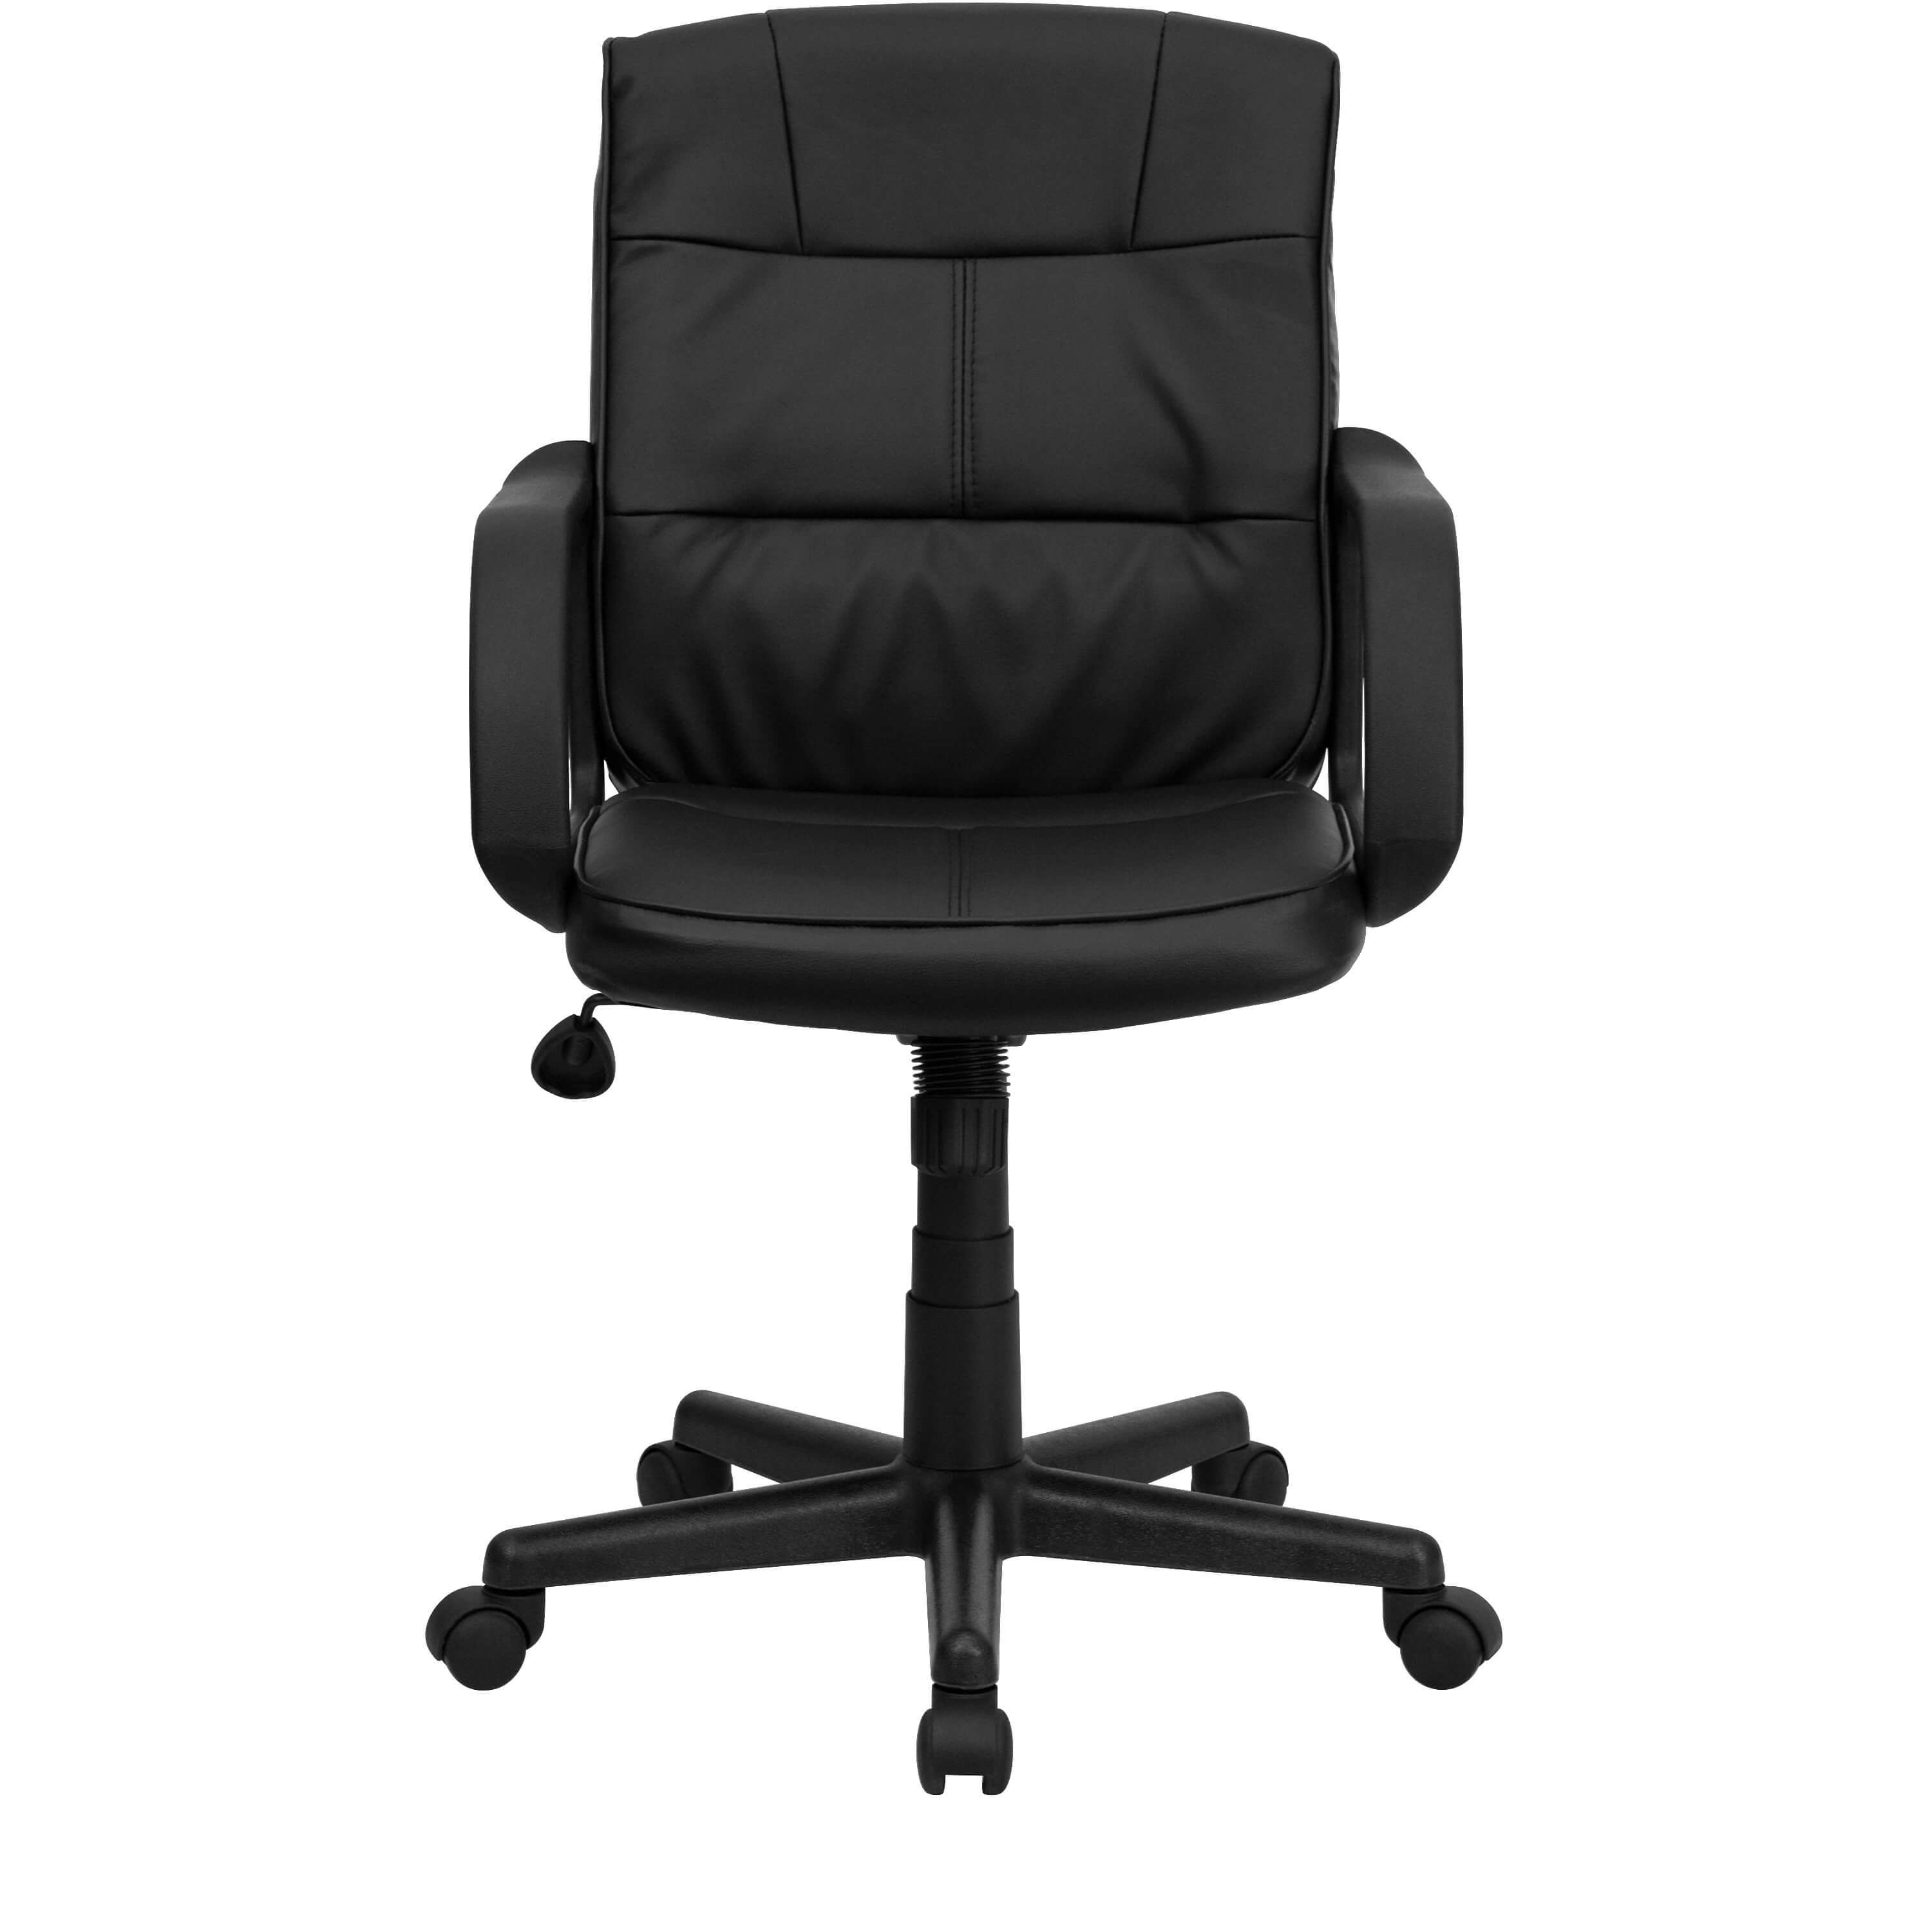 black leather desk chairs lifting elderly dorado office chair front view